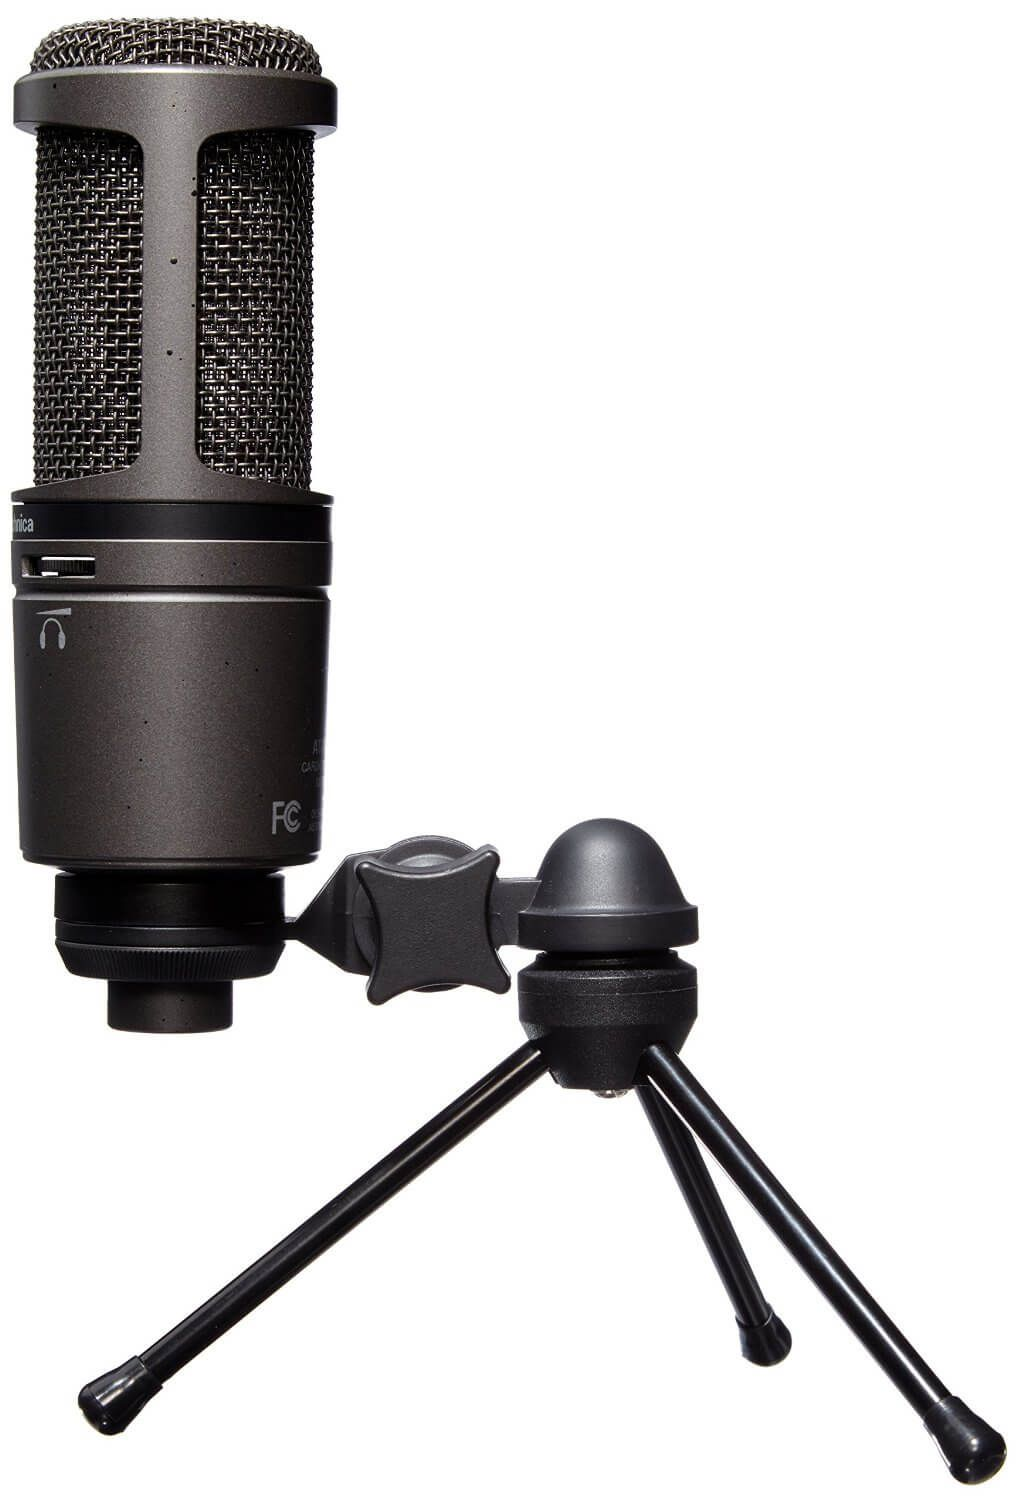 Audio Technica At2020 Usb Review Best Microphone For Youtube Best Usb Microphone Usb Microphone Microphone